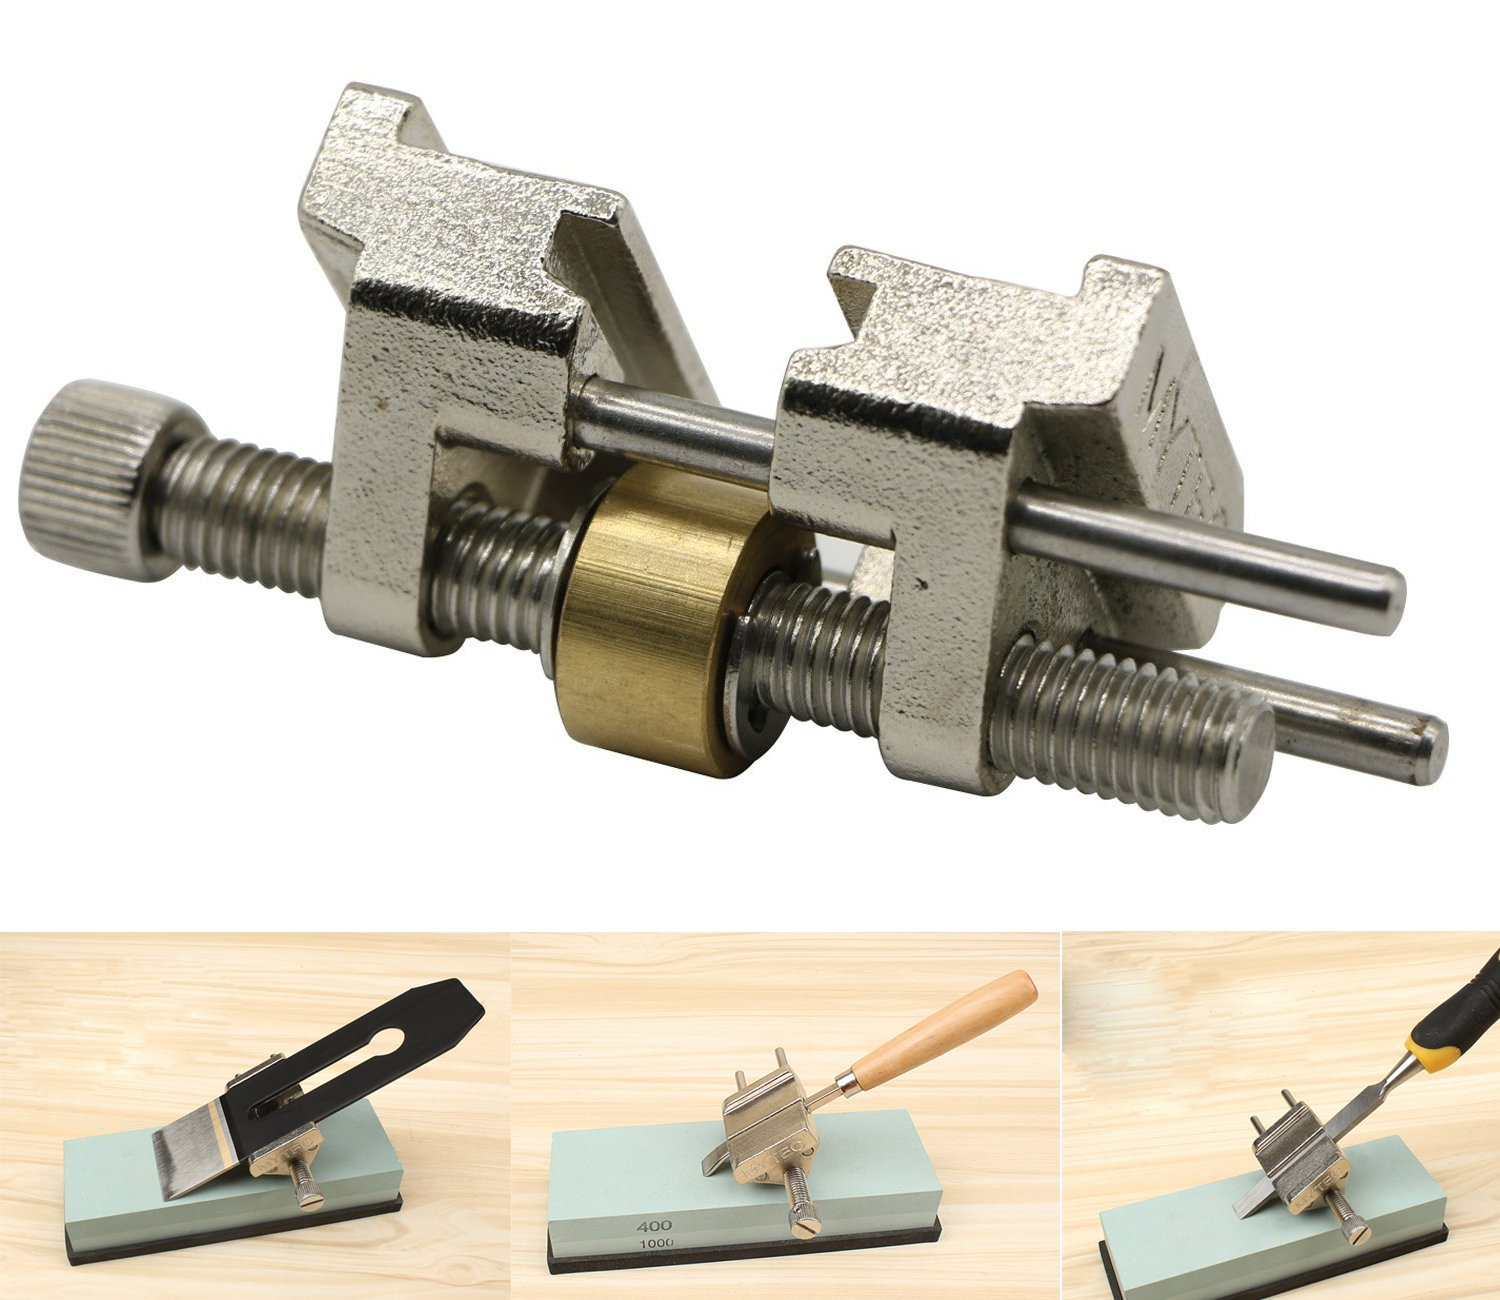 LepoHome Stainless Steel Honing Guide with Brass Roller for Wood Chisel Fixed Angle Knife Sharpener Planer Blade Sharpening(Clamping Width Range 0.2''-3.2'')